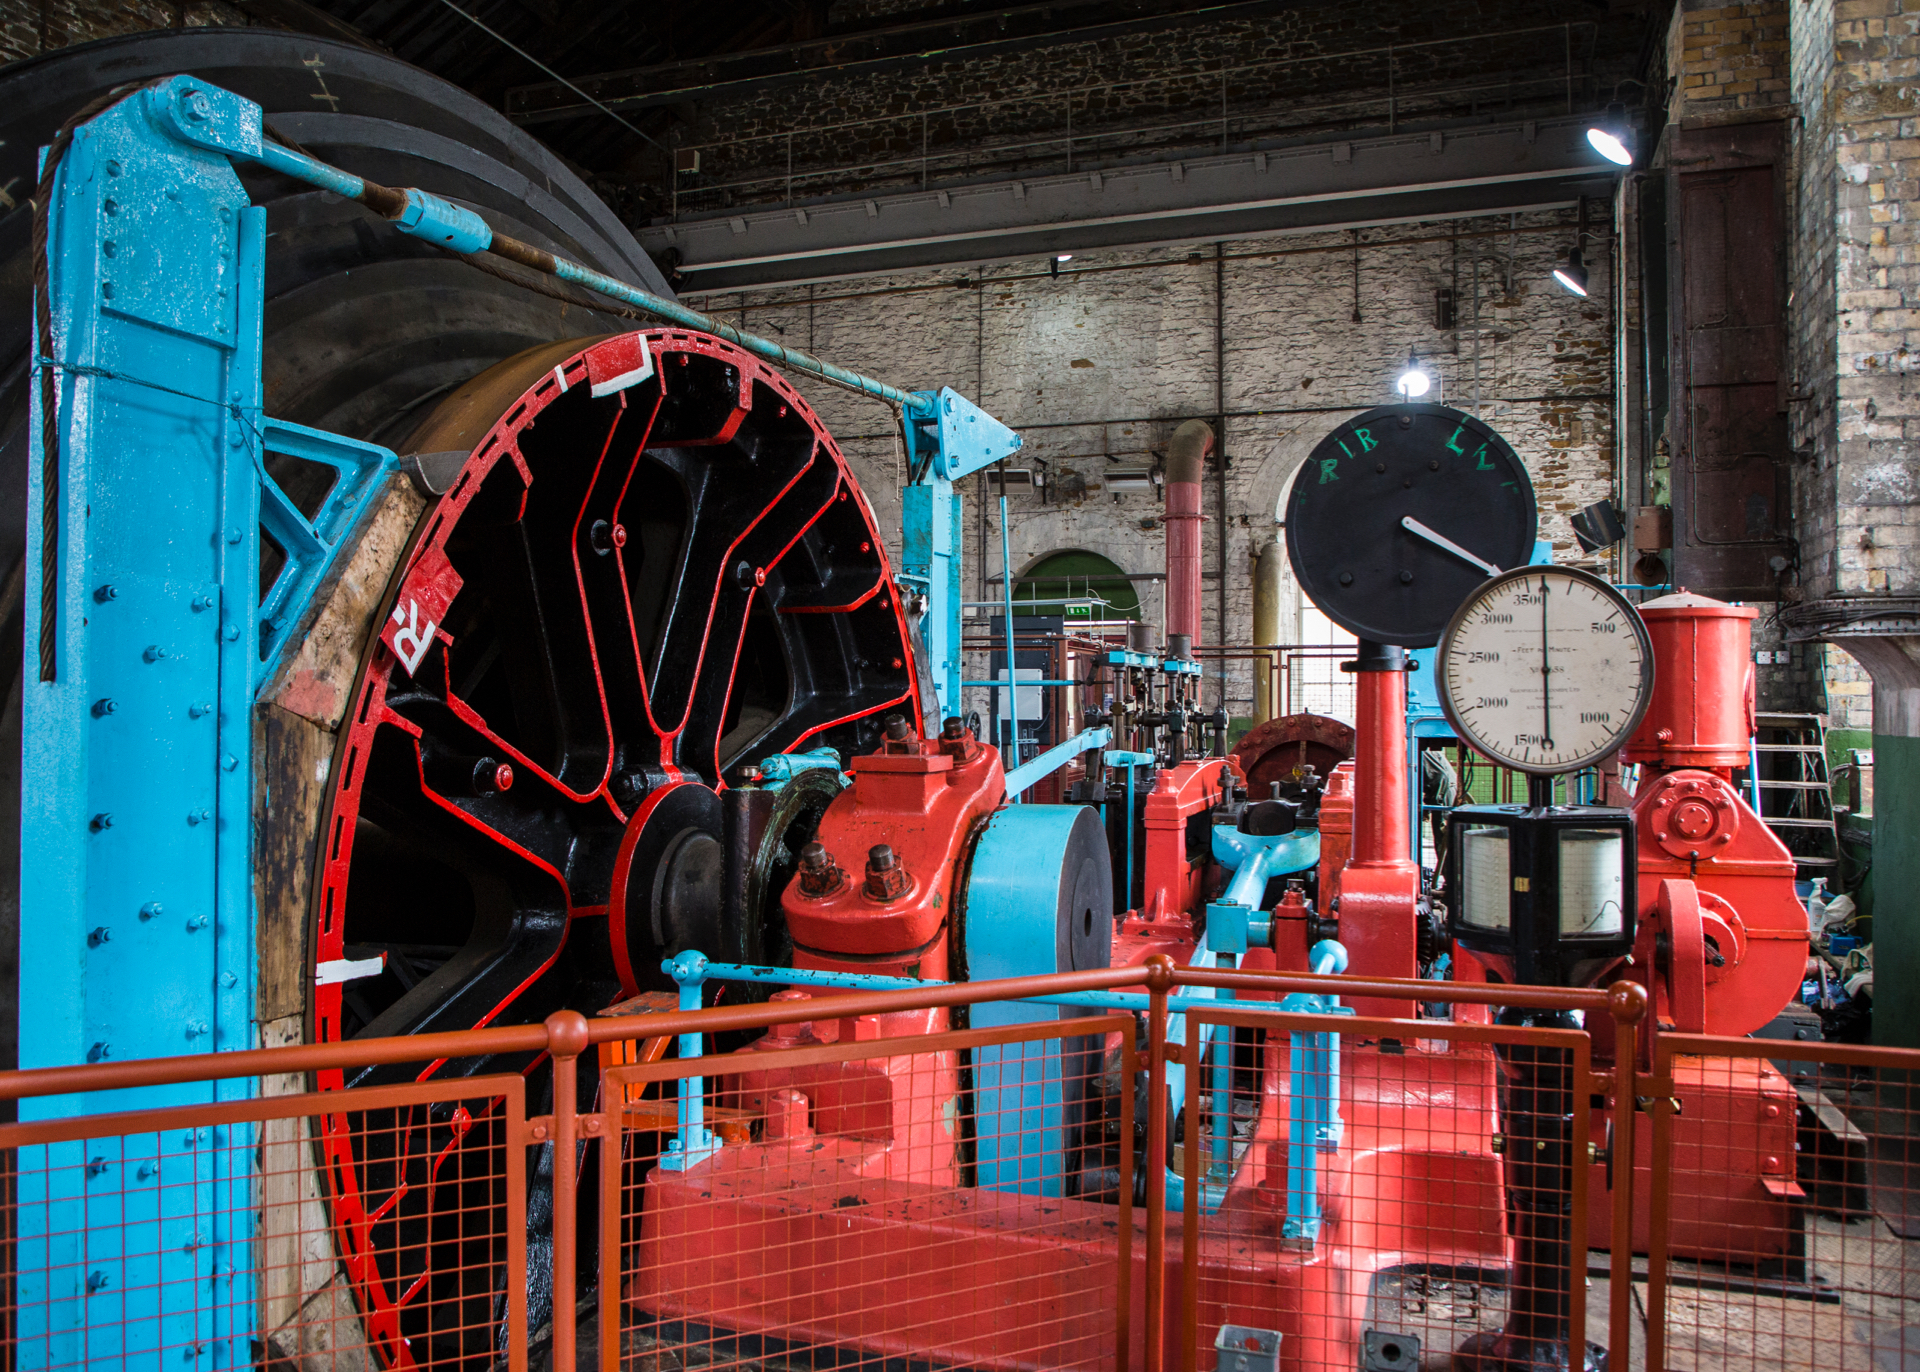 The steam-powered wheel for running the elevators.